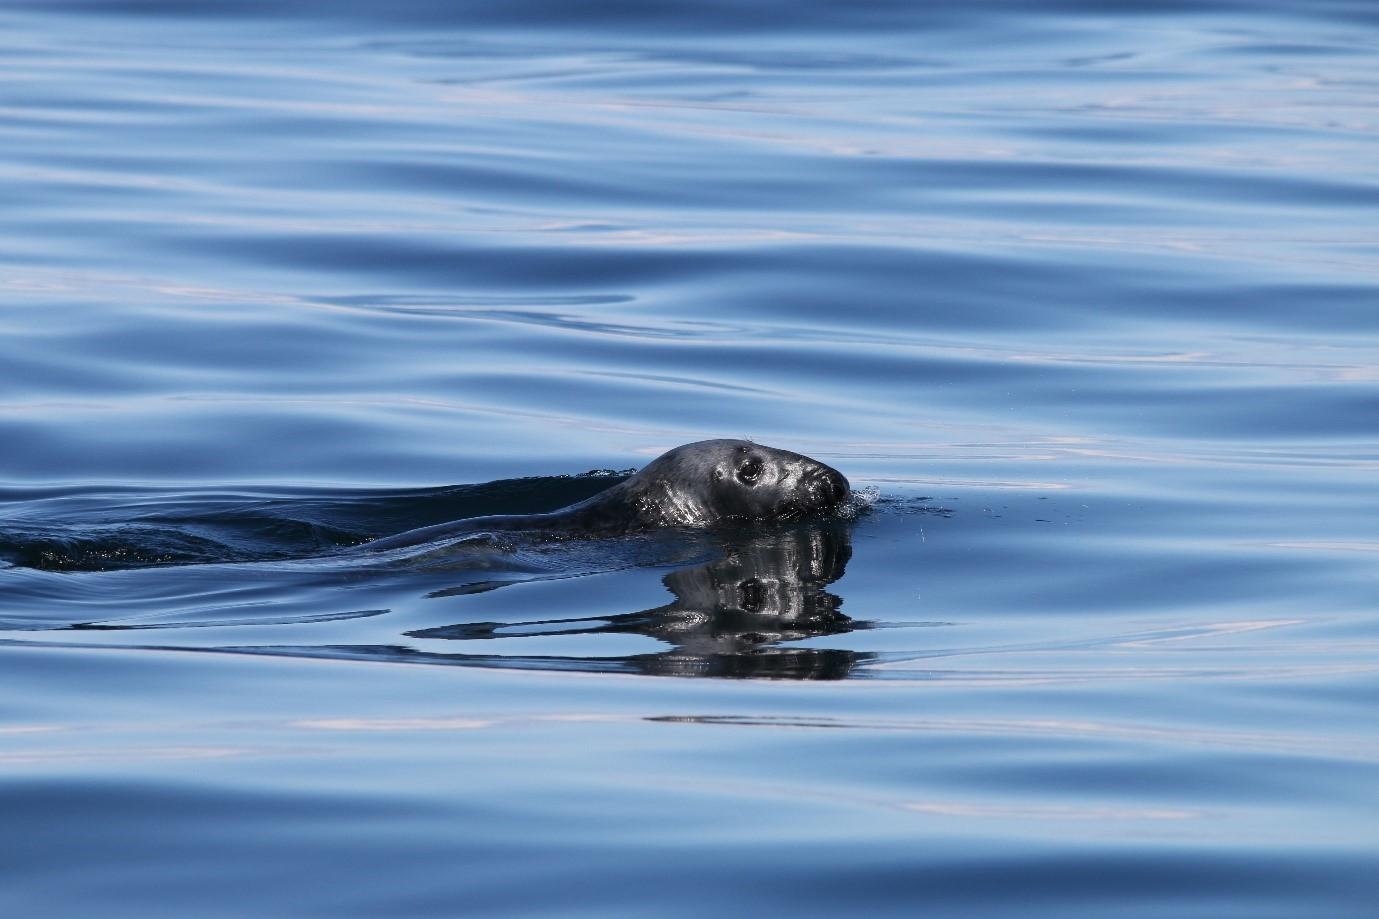 A grey seal, this species is only found in the Northern Atlantic